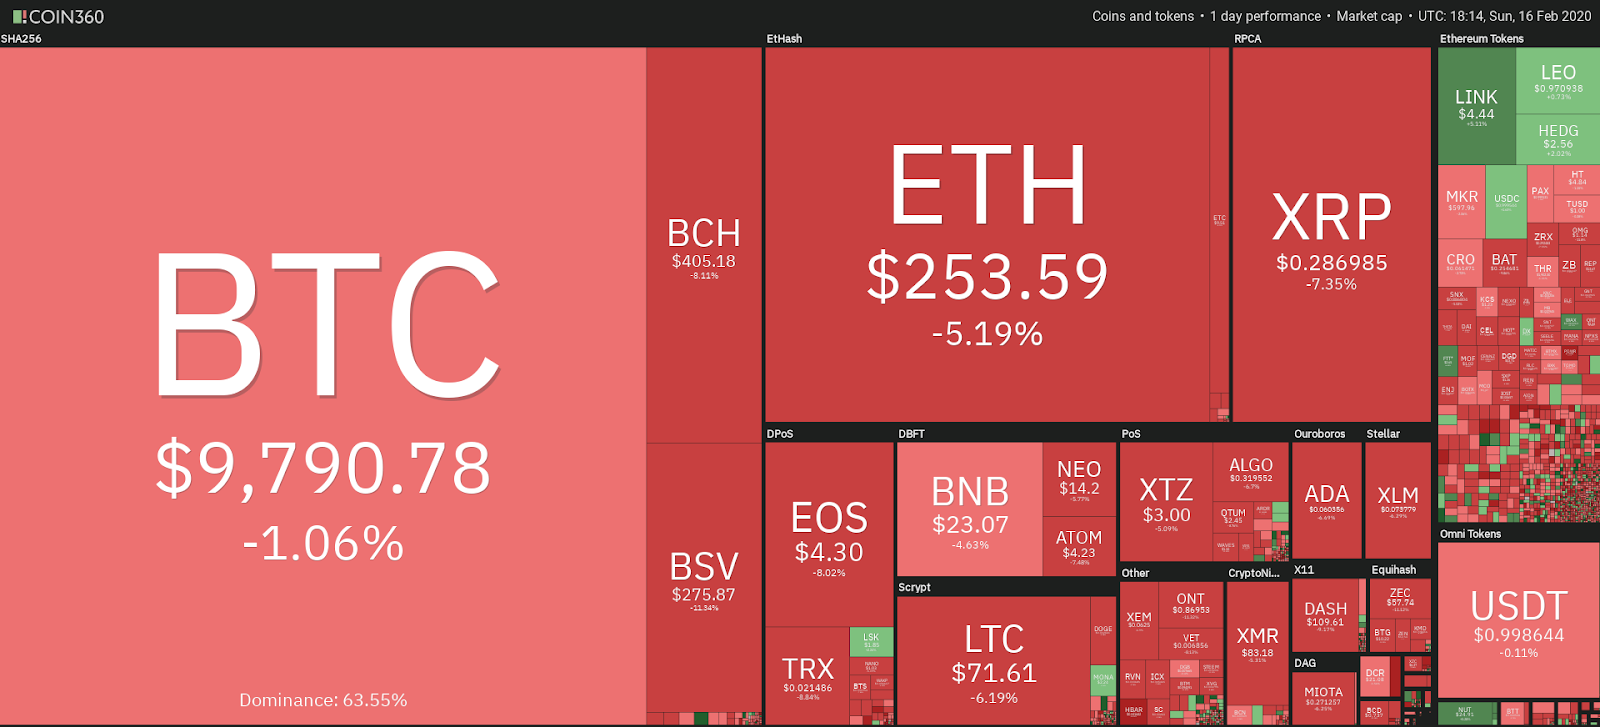 Crypto market 1-day price chart. Source: Coin360